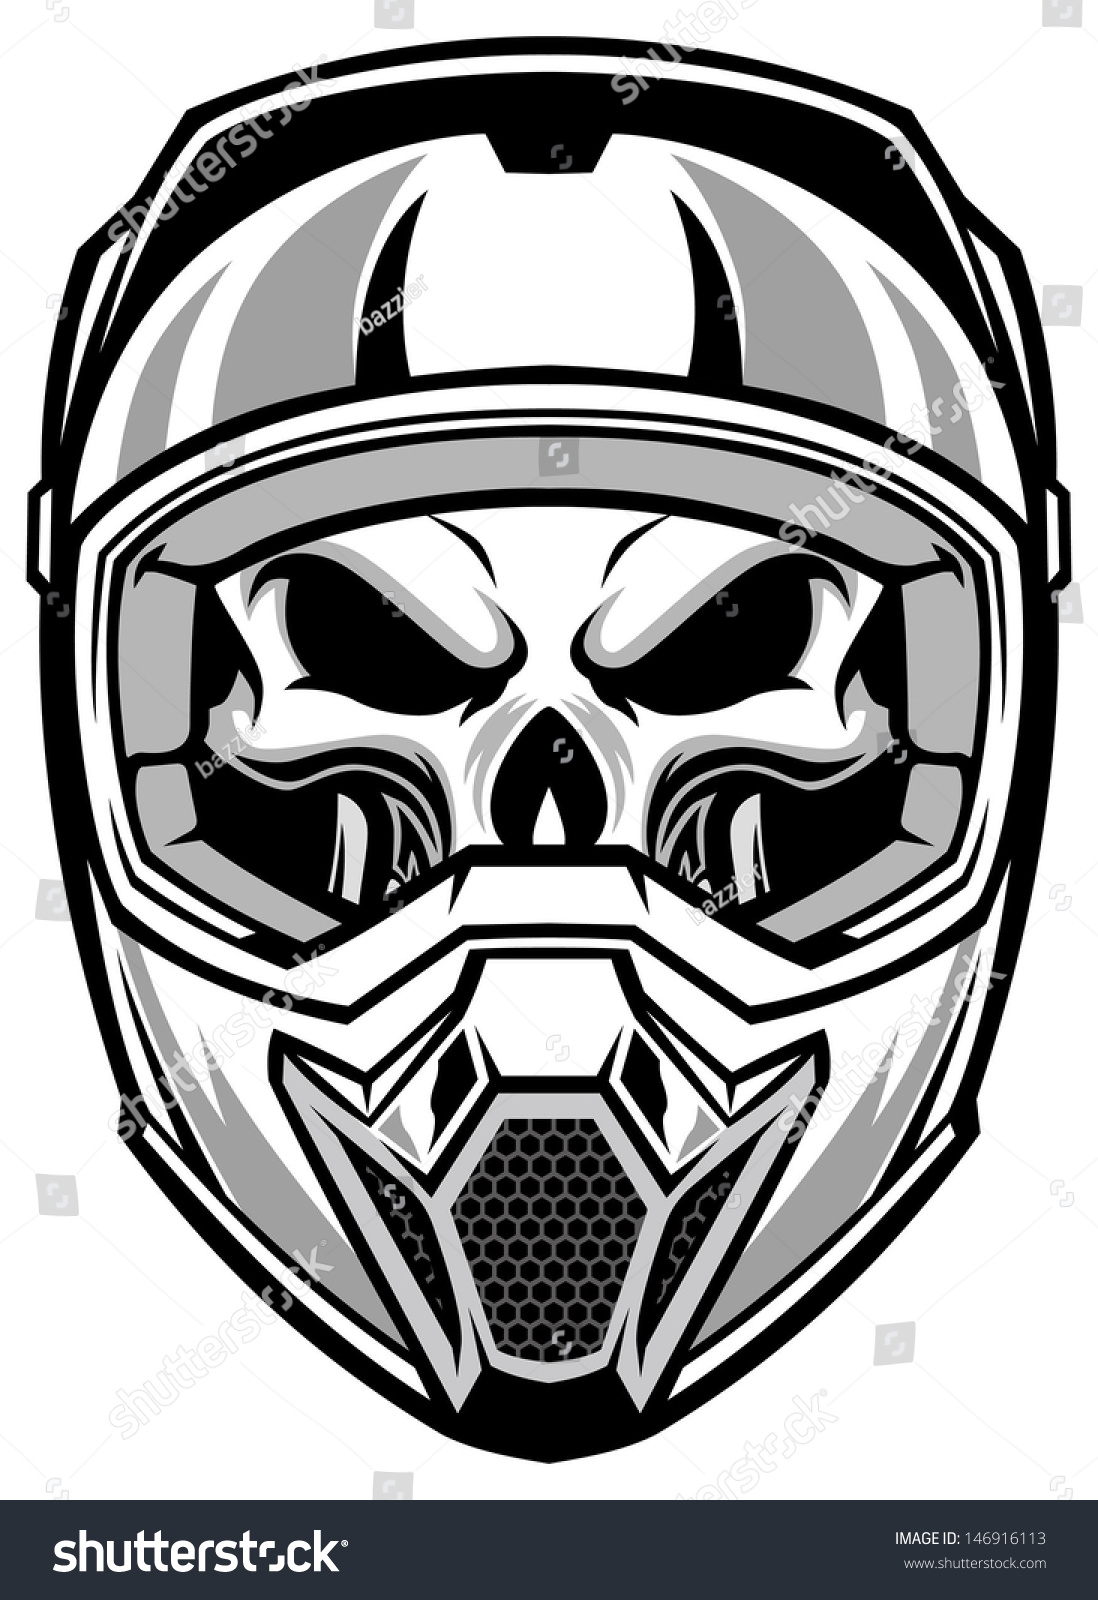 Motorcycle Race Racing Bike Speed Sports Icon Furthermore Skull